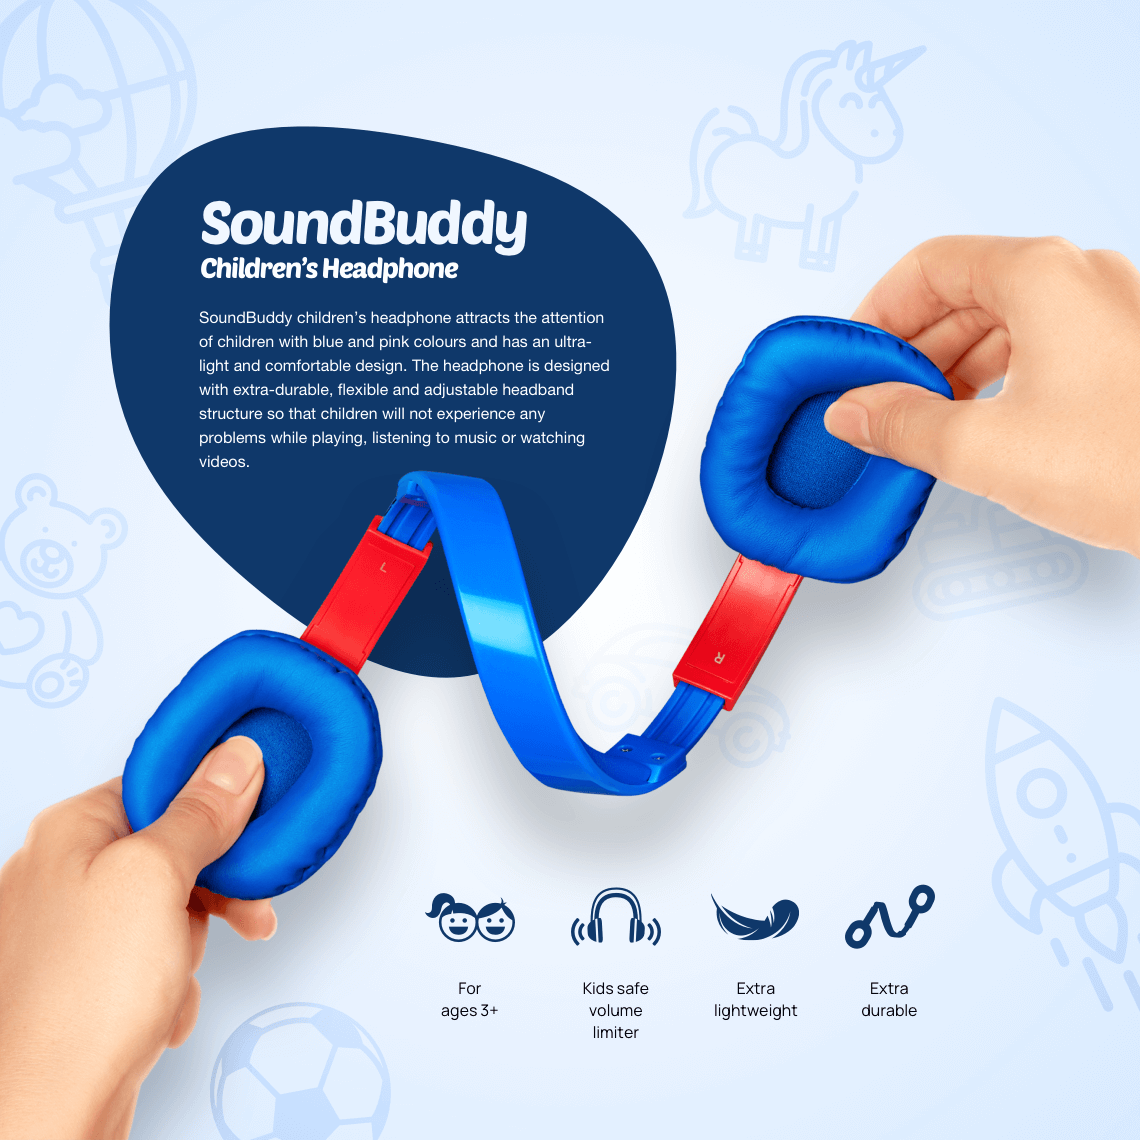 SoundBuddy children's headphone attracts the attention of children with blue and pink colours and has an ultra-light and comfortable design. The headphone is designed with extra-durable, flexible and adjustable headband structure so that children will not experience any problems while playing, listening to music or watching videos.